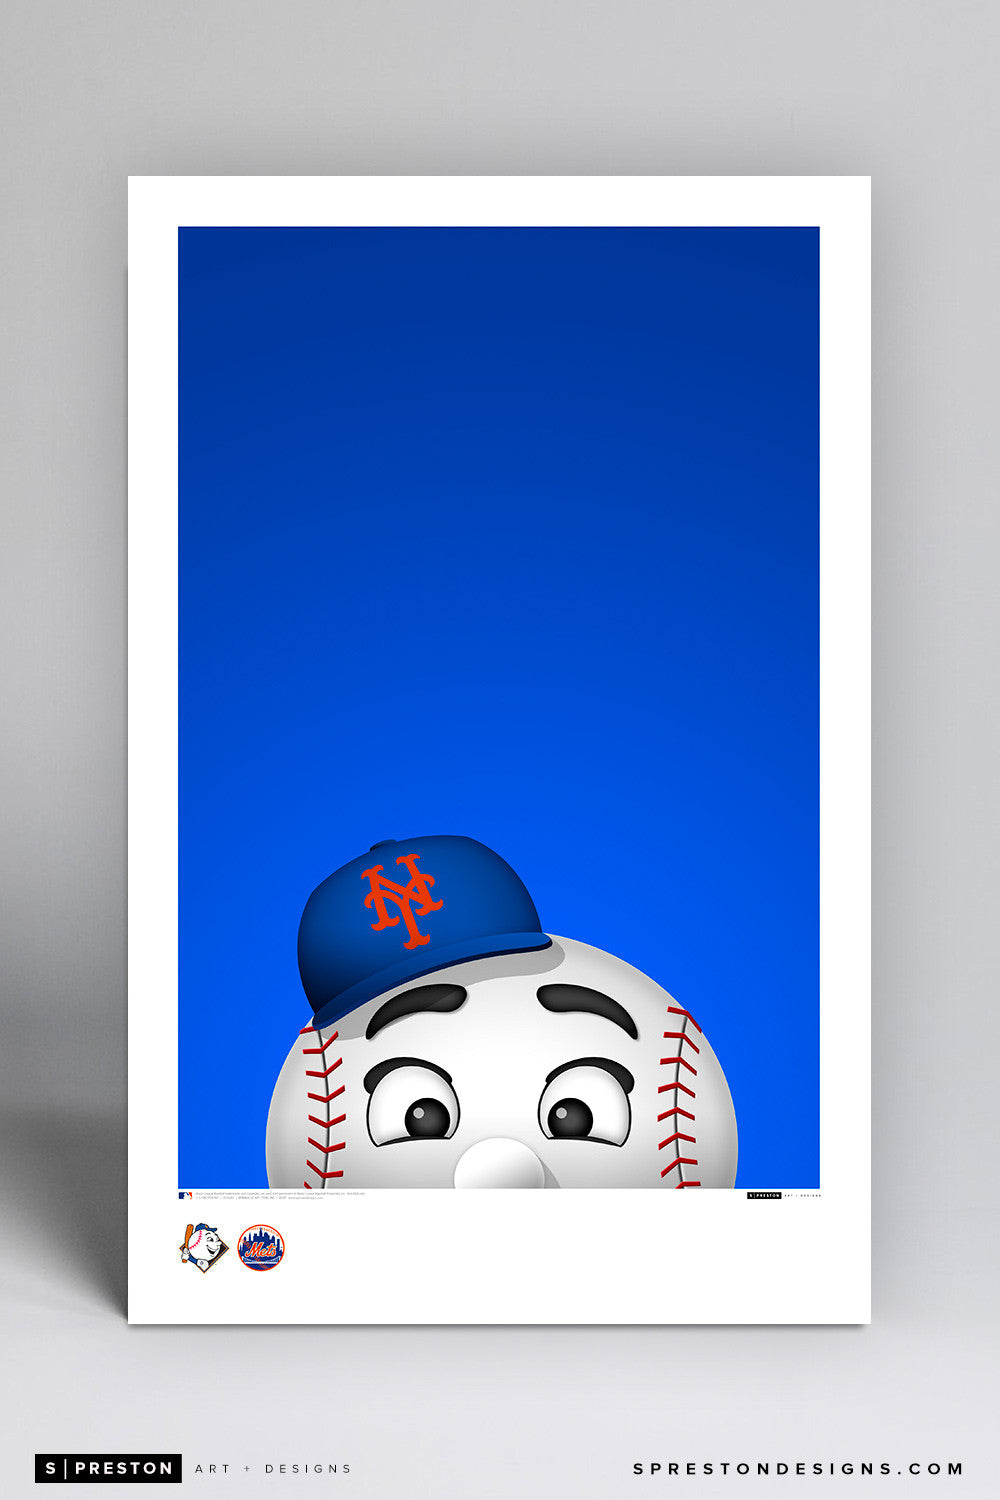 Minimalist Mr. Met Art Poster Art Poster - New York Mets - S. Preston Art + Designs